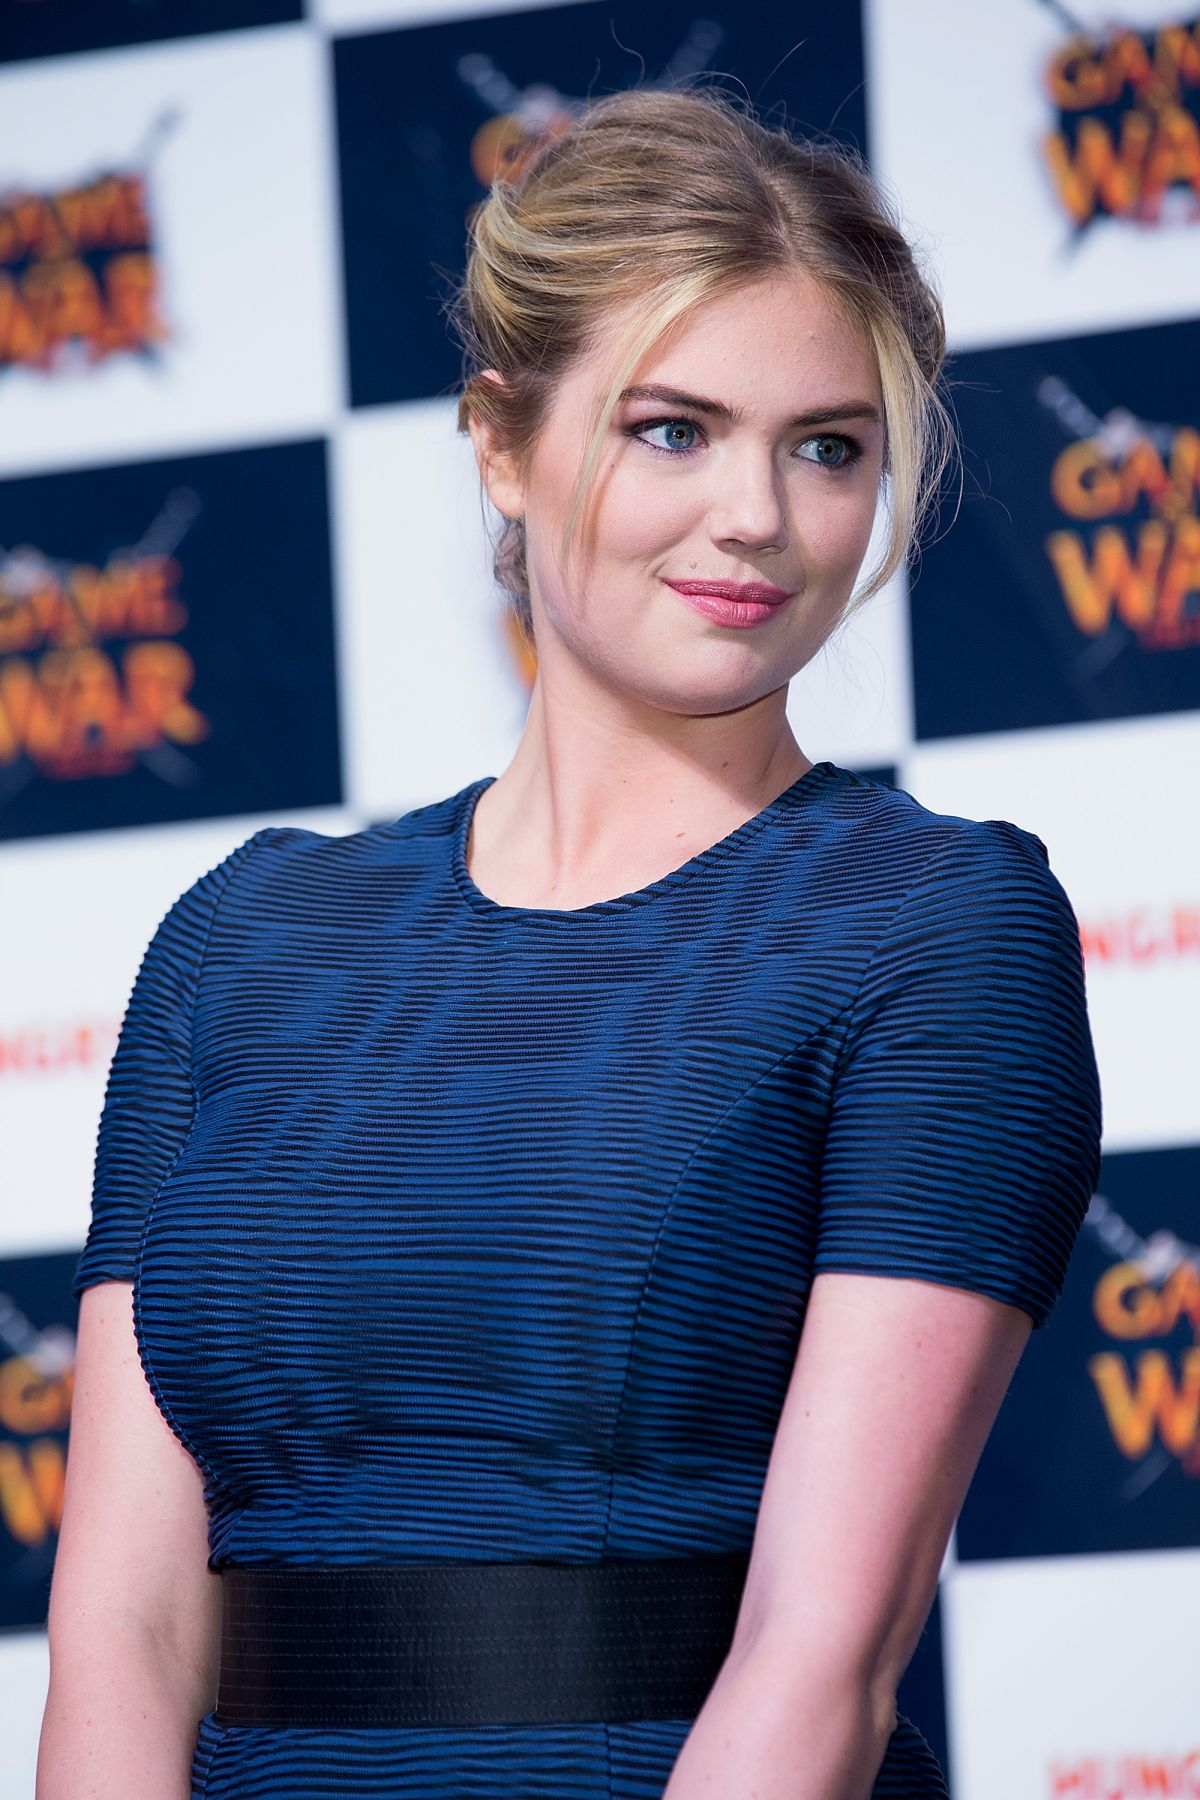 Kate upton at game of war fire age promotional event in busan 3 jpg